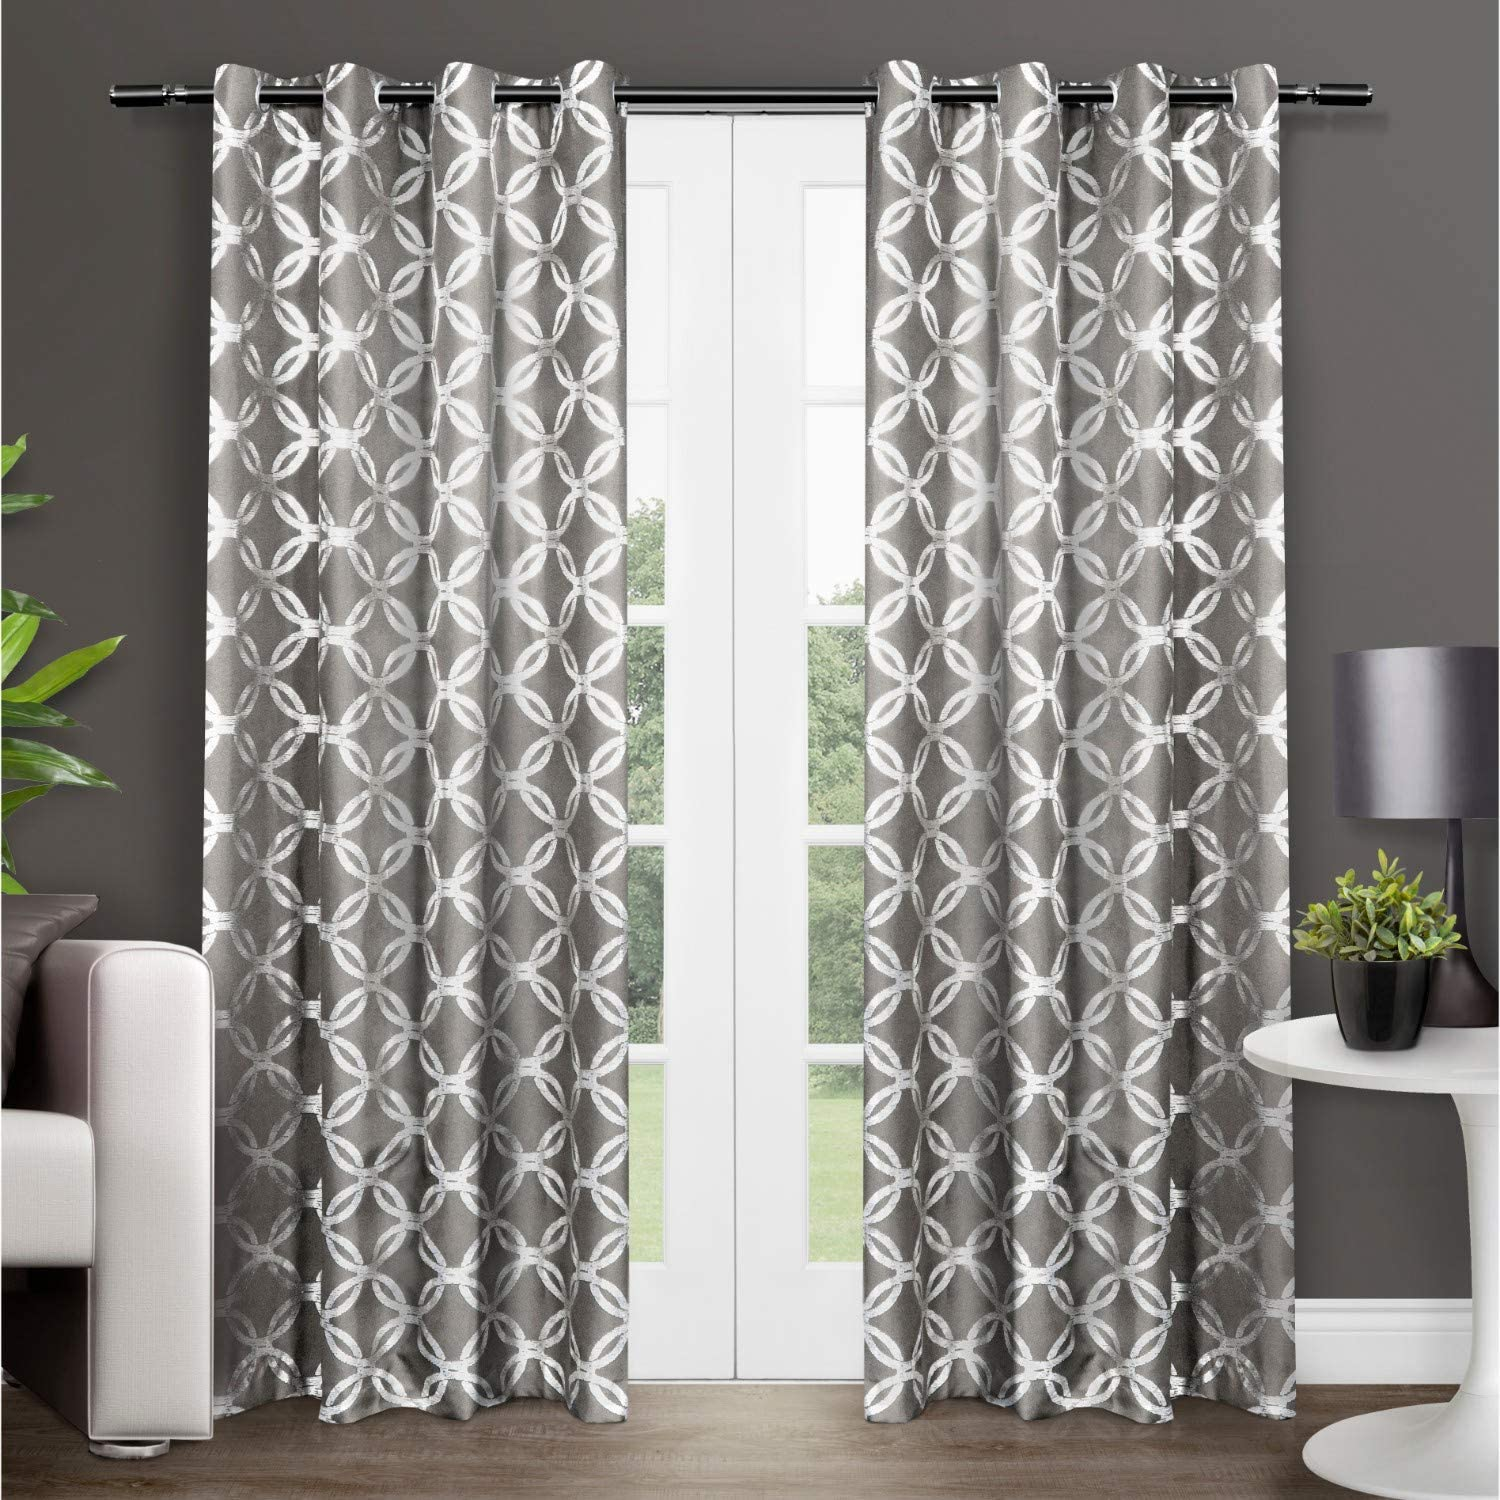 Exclusive Home Curtains Modo Metallic Geometric Window Curtain Panel Pair with Grommet Top, 54x96, Black Pearl, 2 Piece